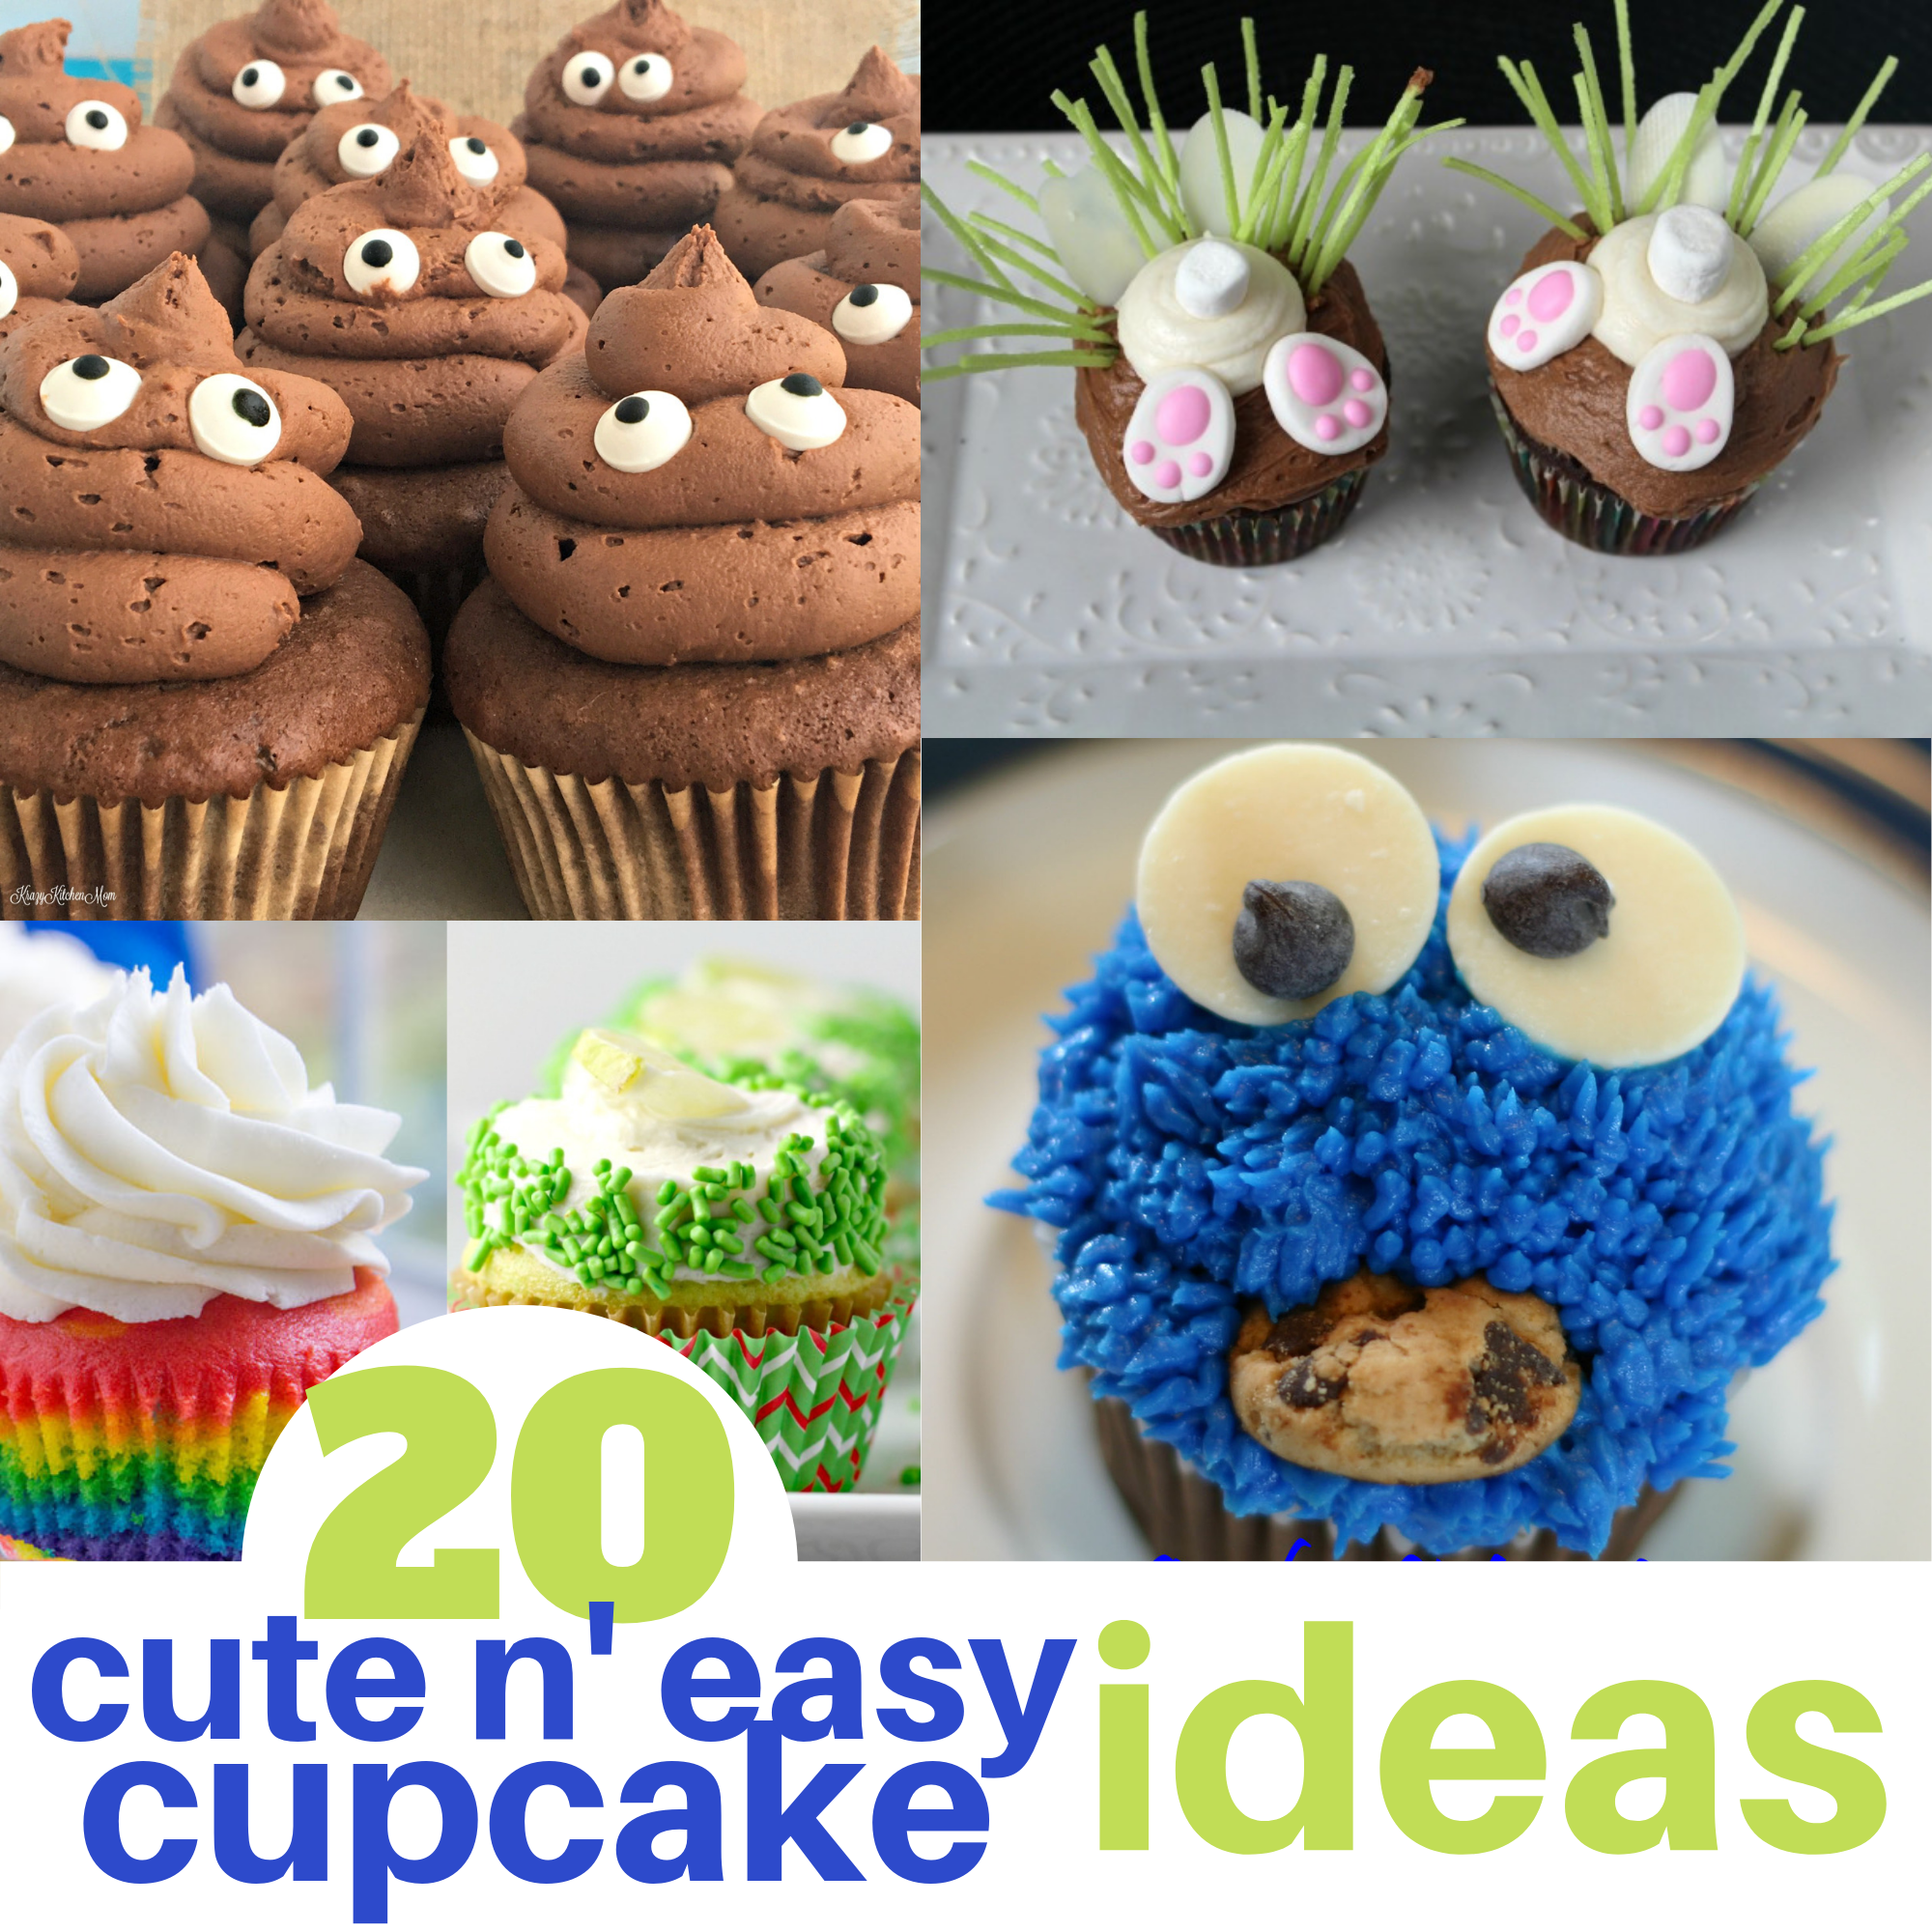 20 Cute And Easy Cupcake Ideas